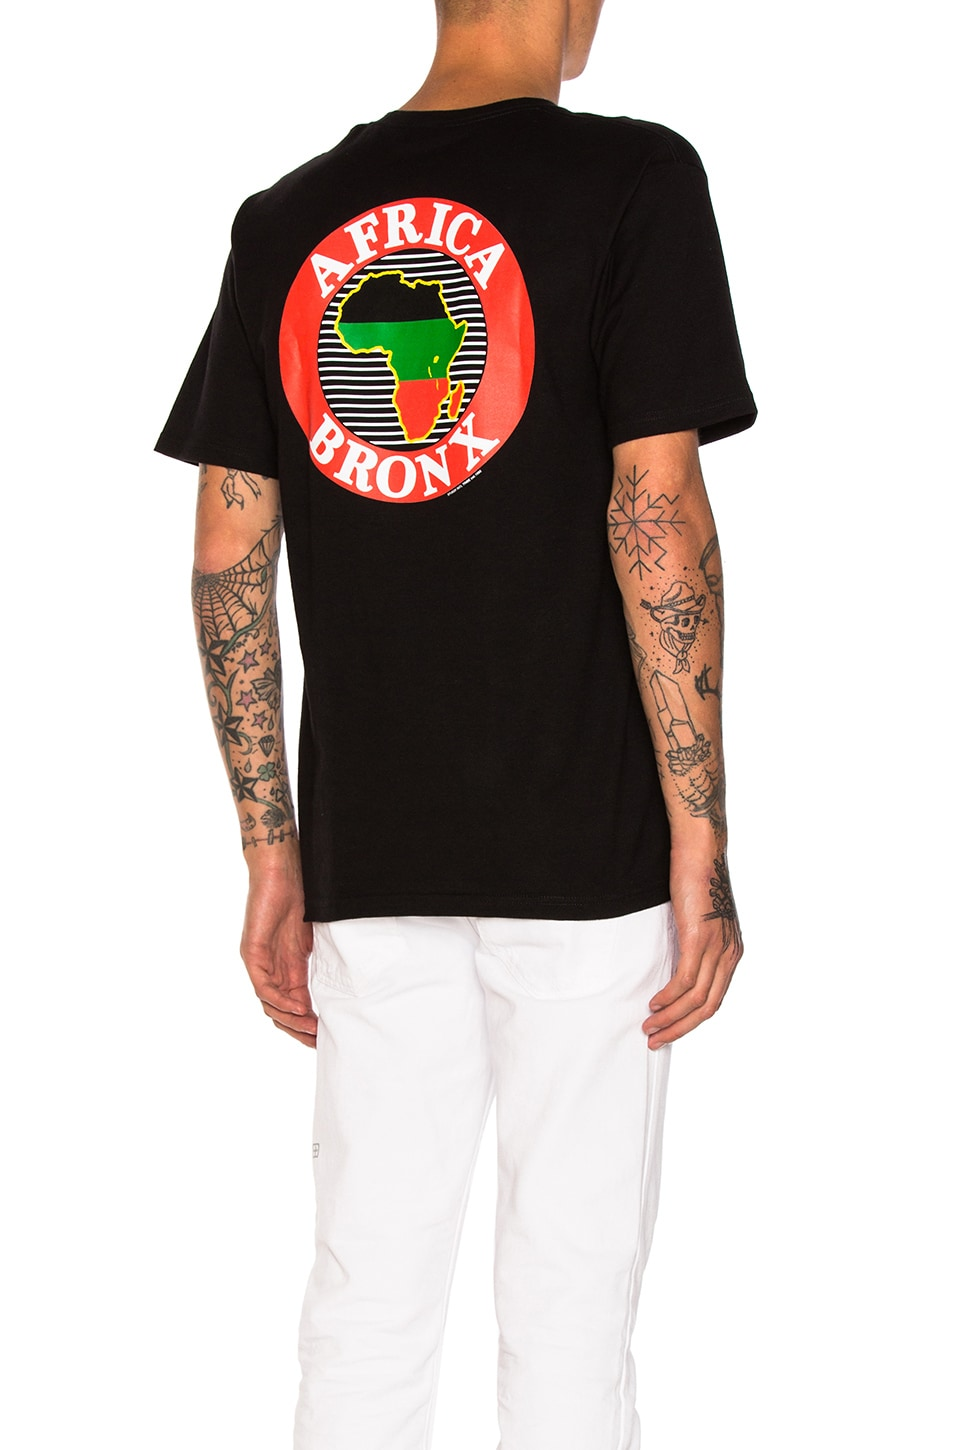 Africa Bronx Tee by Stussy